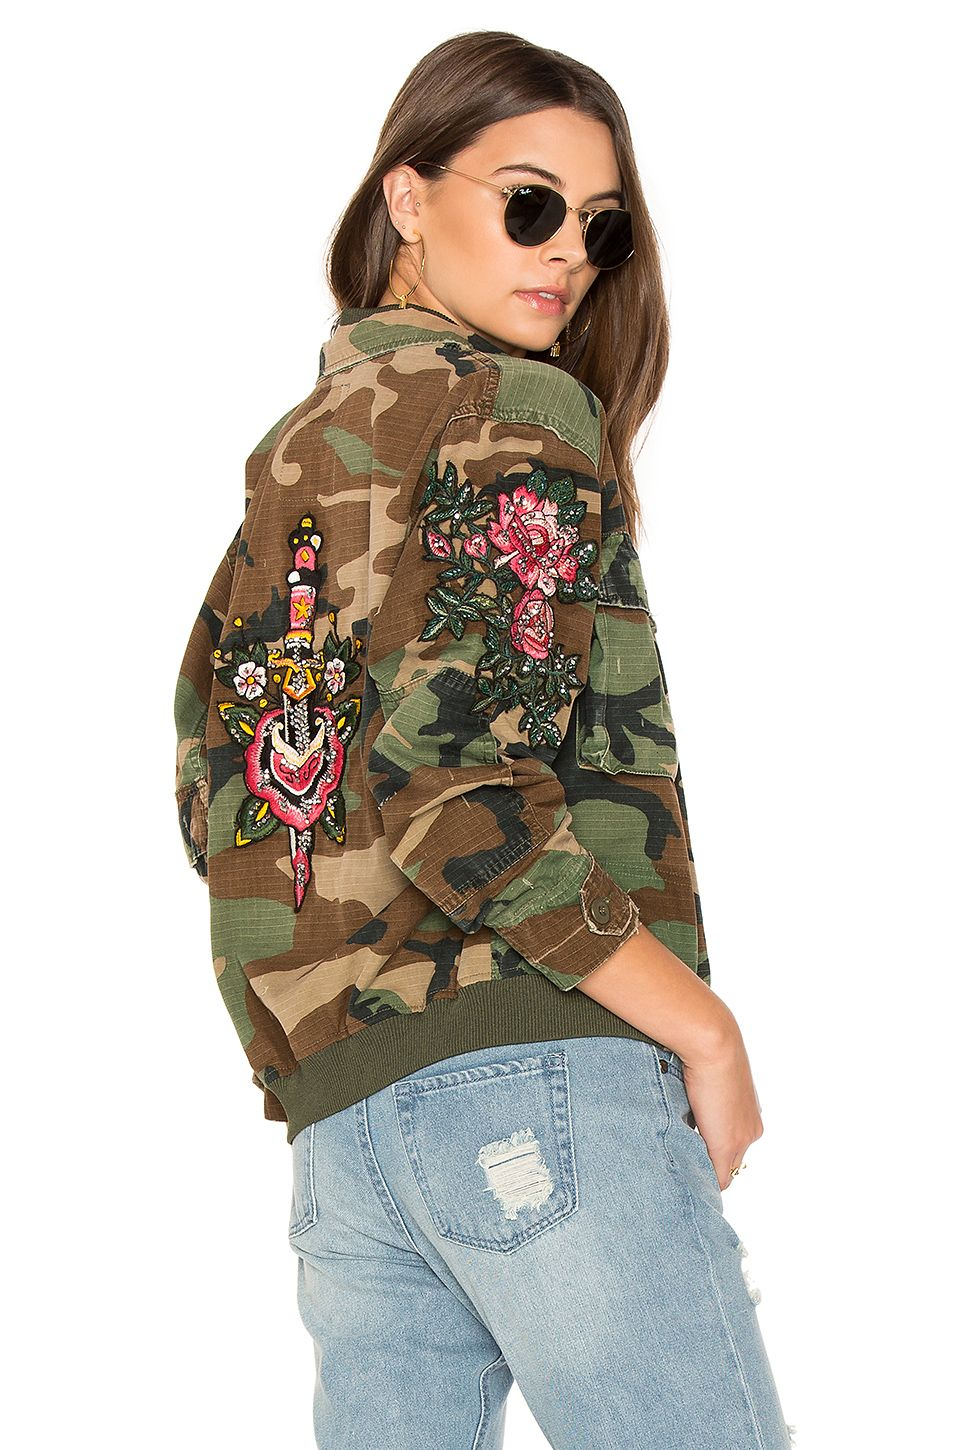 AS65 Embroidered Bomber in Army REVOLVE Embroidered